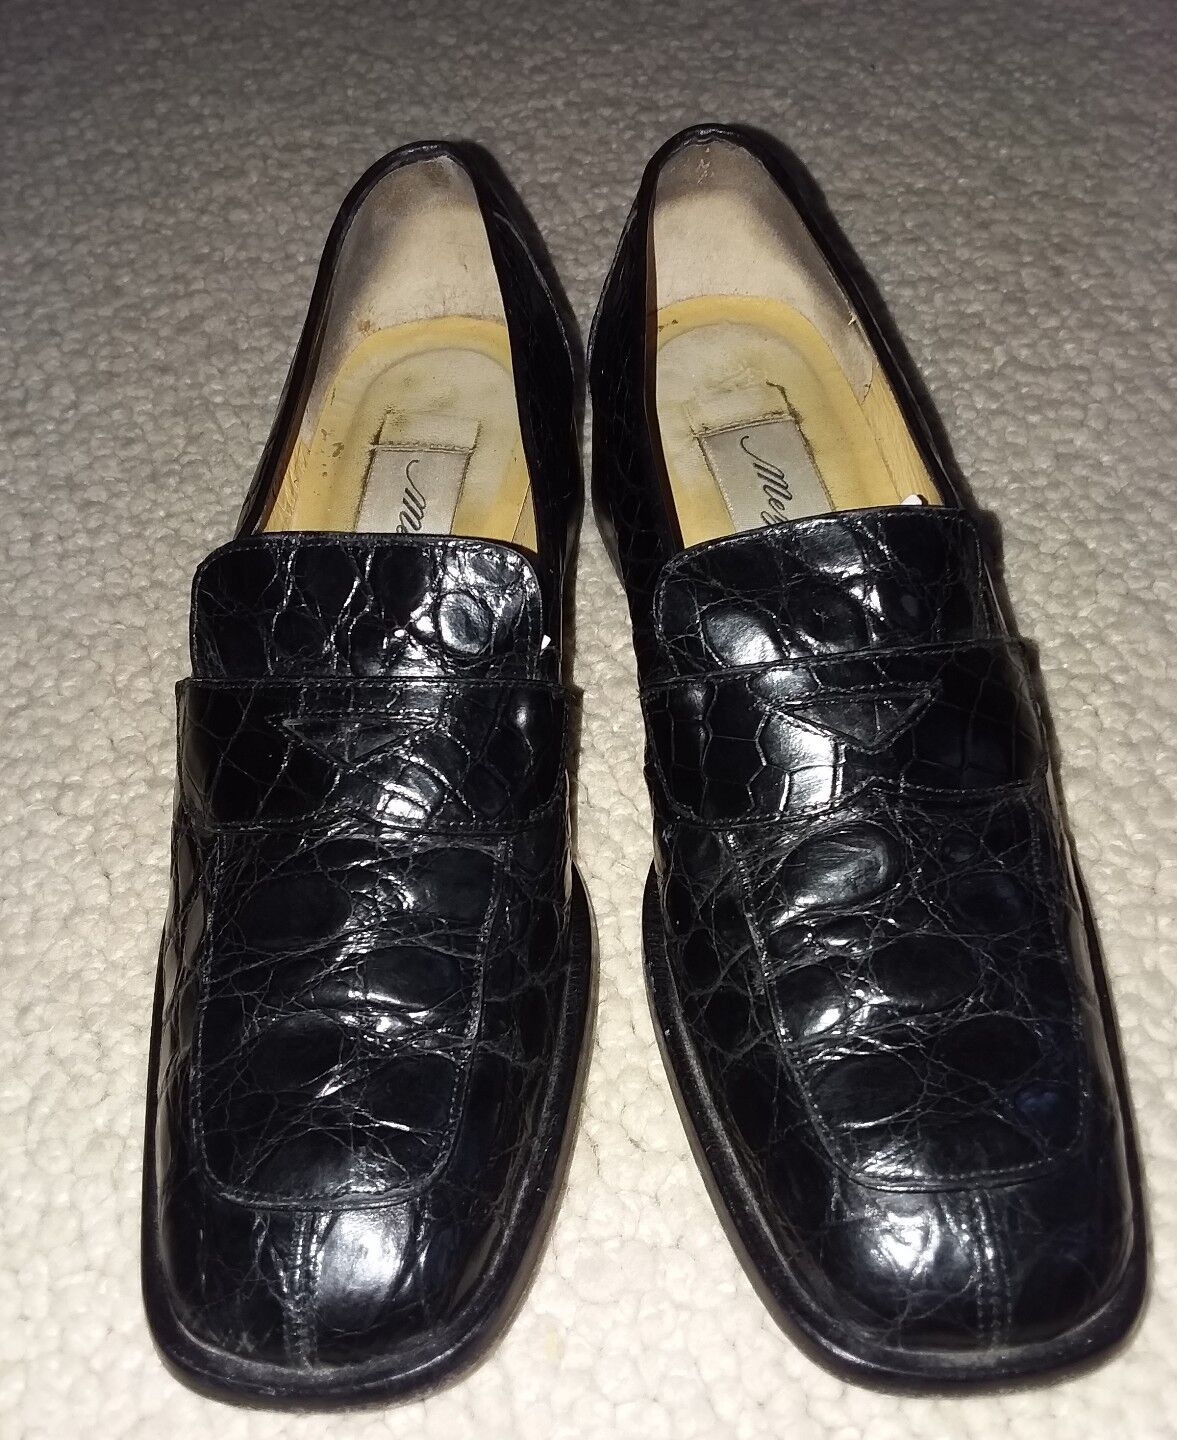 CROCODILE BLACK WNS LOAFERS LOAFERS LOAFERS SHOES 6.5M 6ed4cd